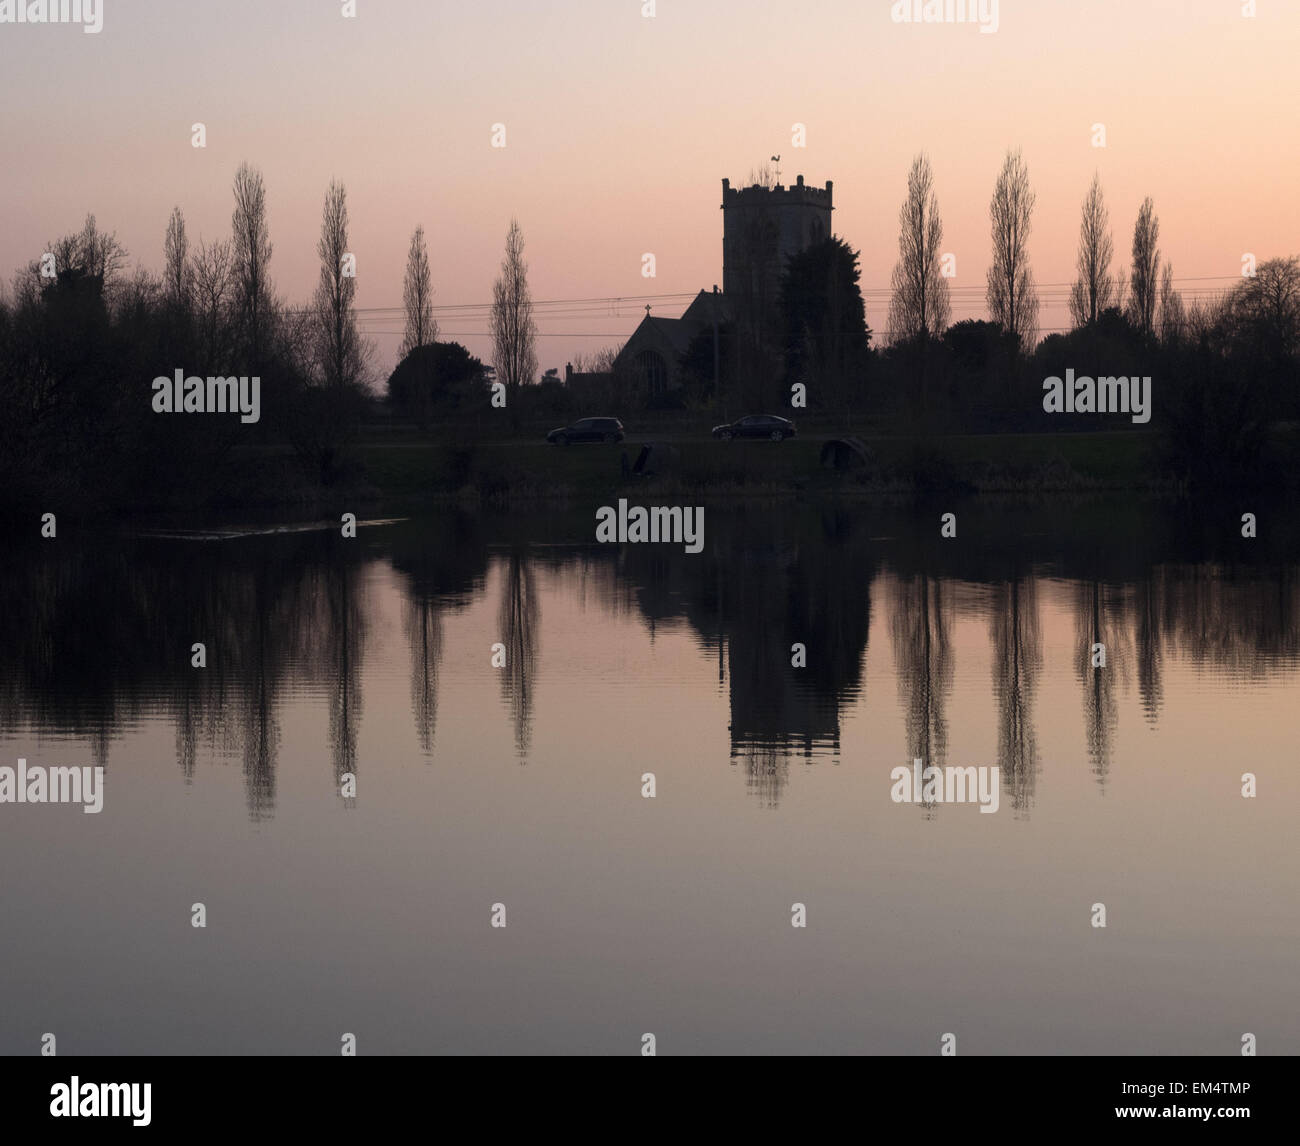 The church of Saint Wilfrid in South Muskham Nottinghamshire reflected in the waters of a lake nearby. - Stock Image